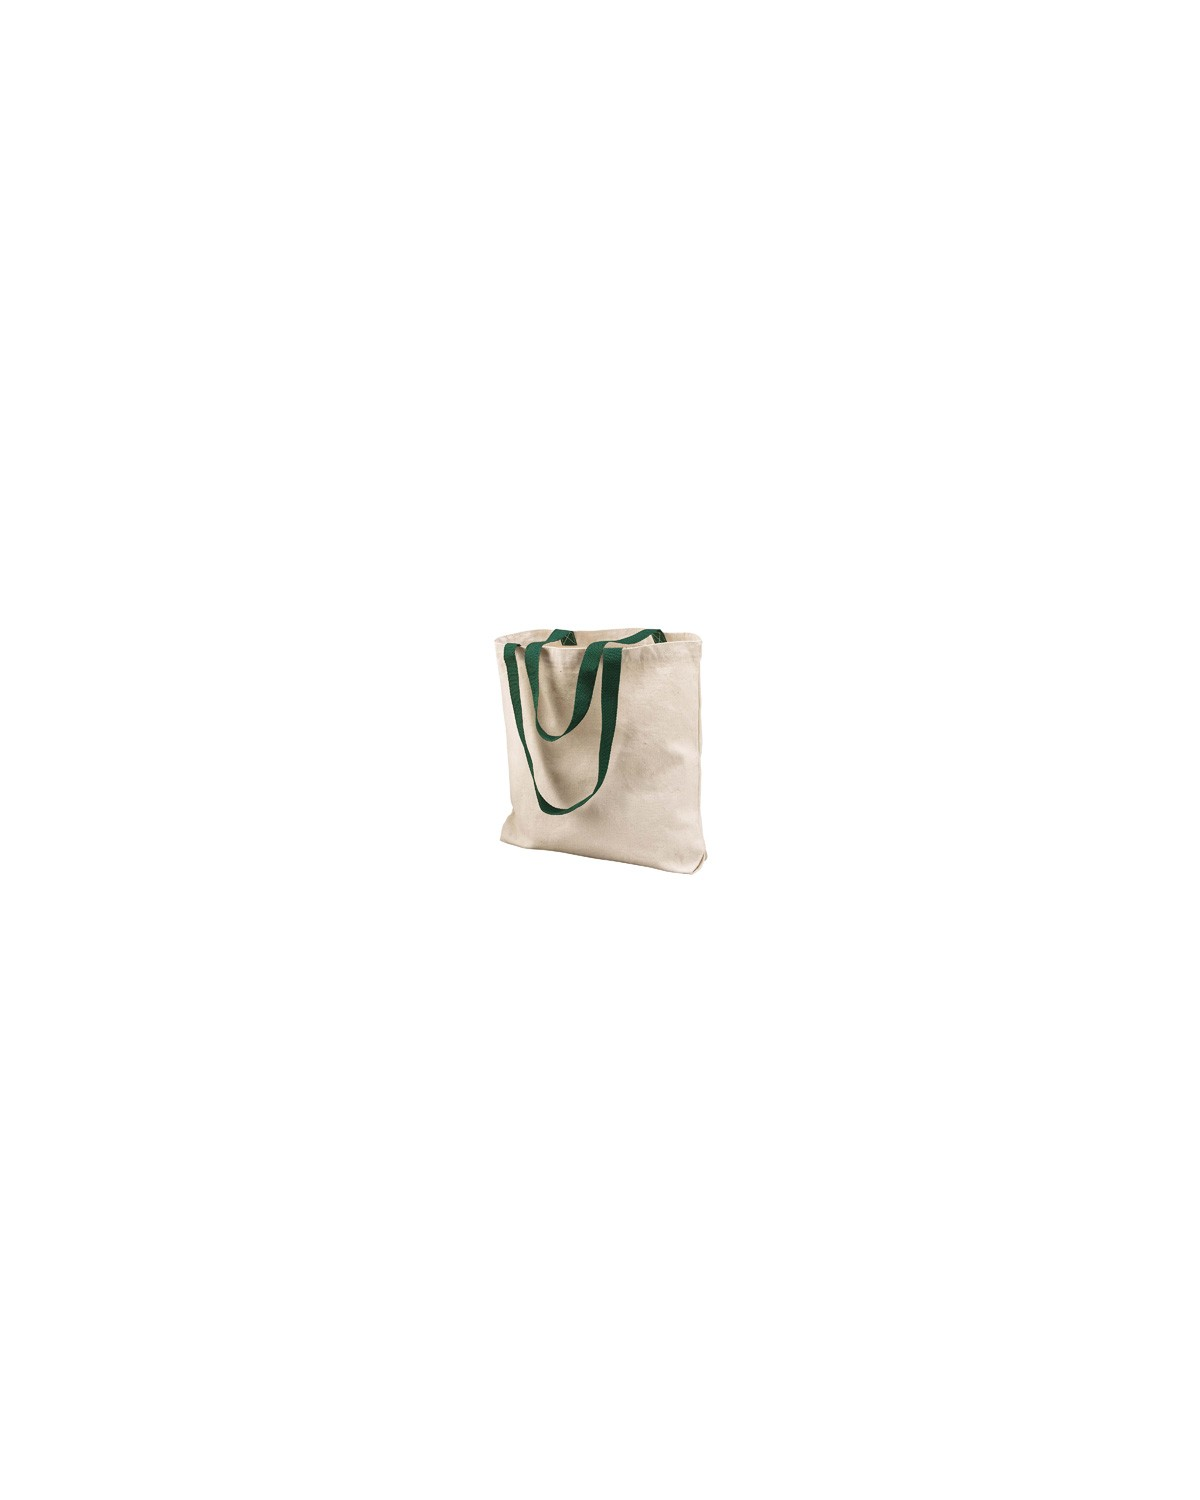 8868 Liberty Bags NATURAL/FOREST